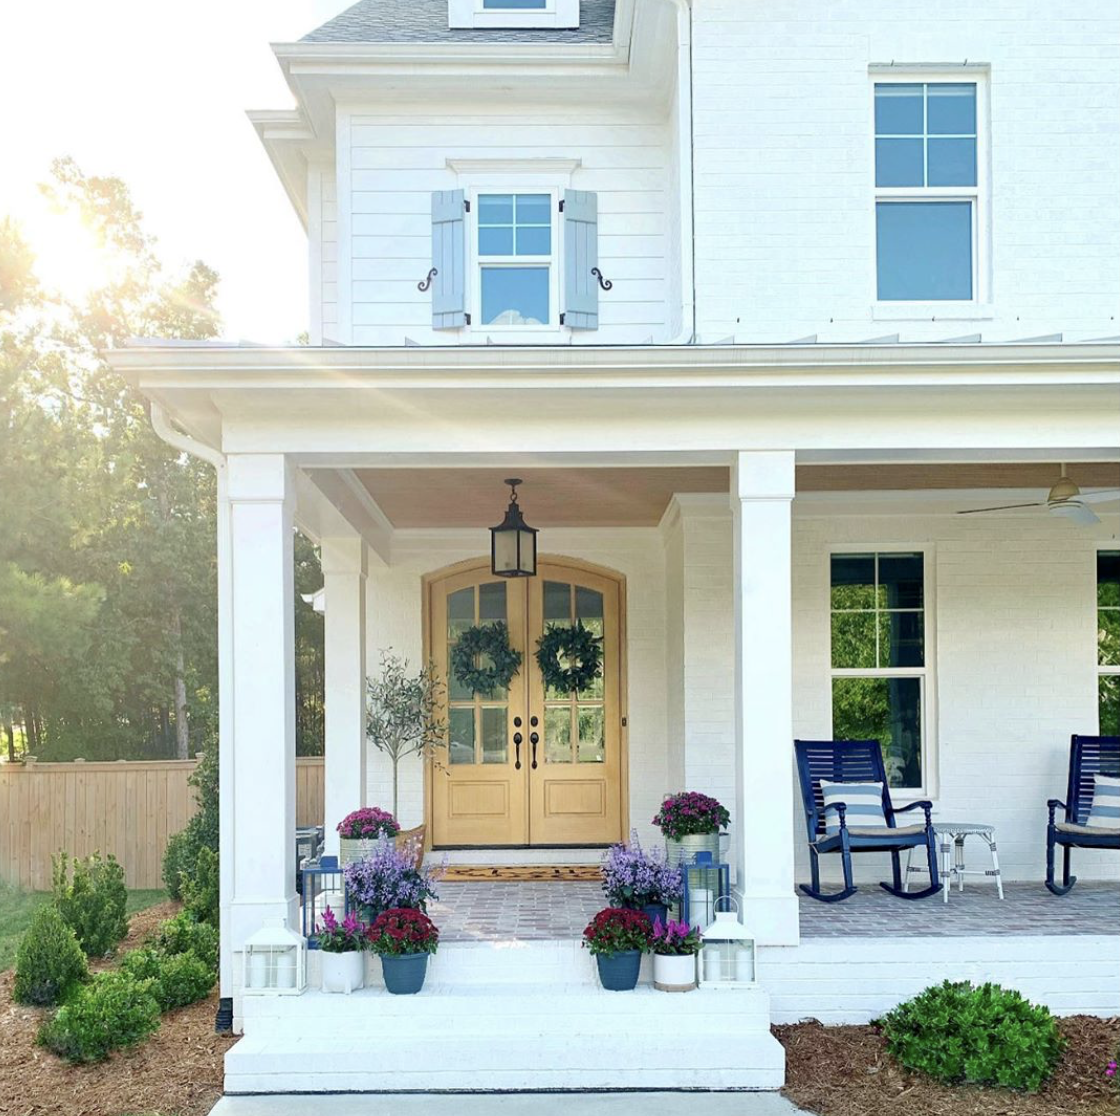 13 Stunning Fall Porches On Instagram You Missed Modern